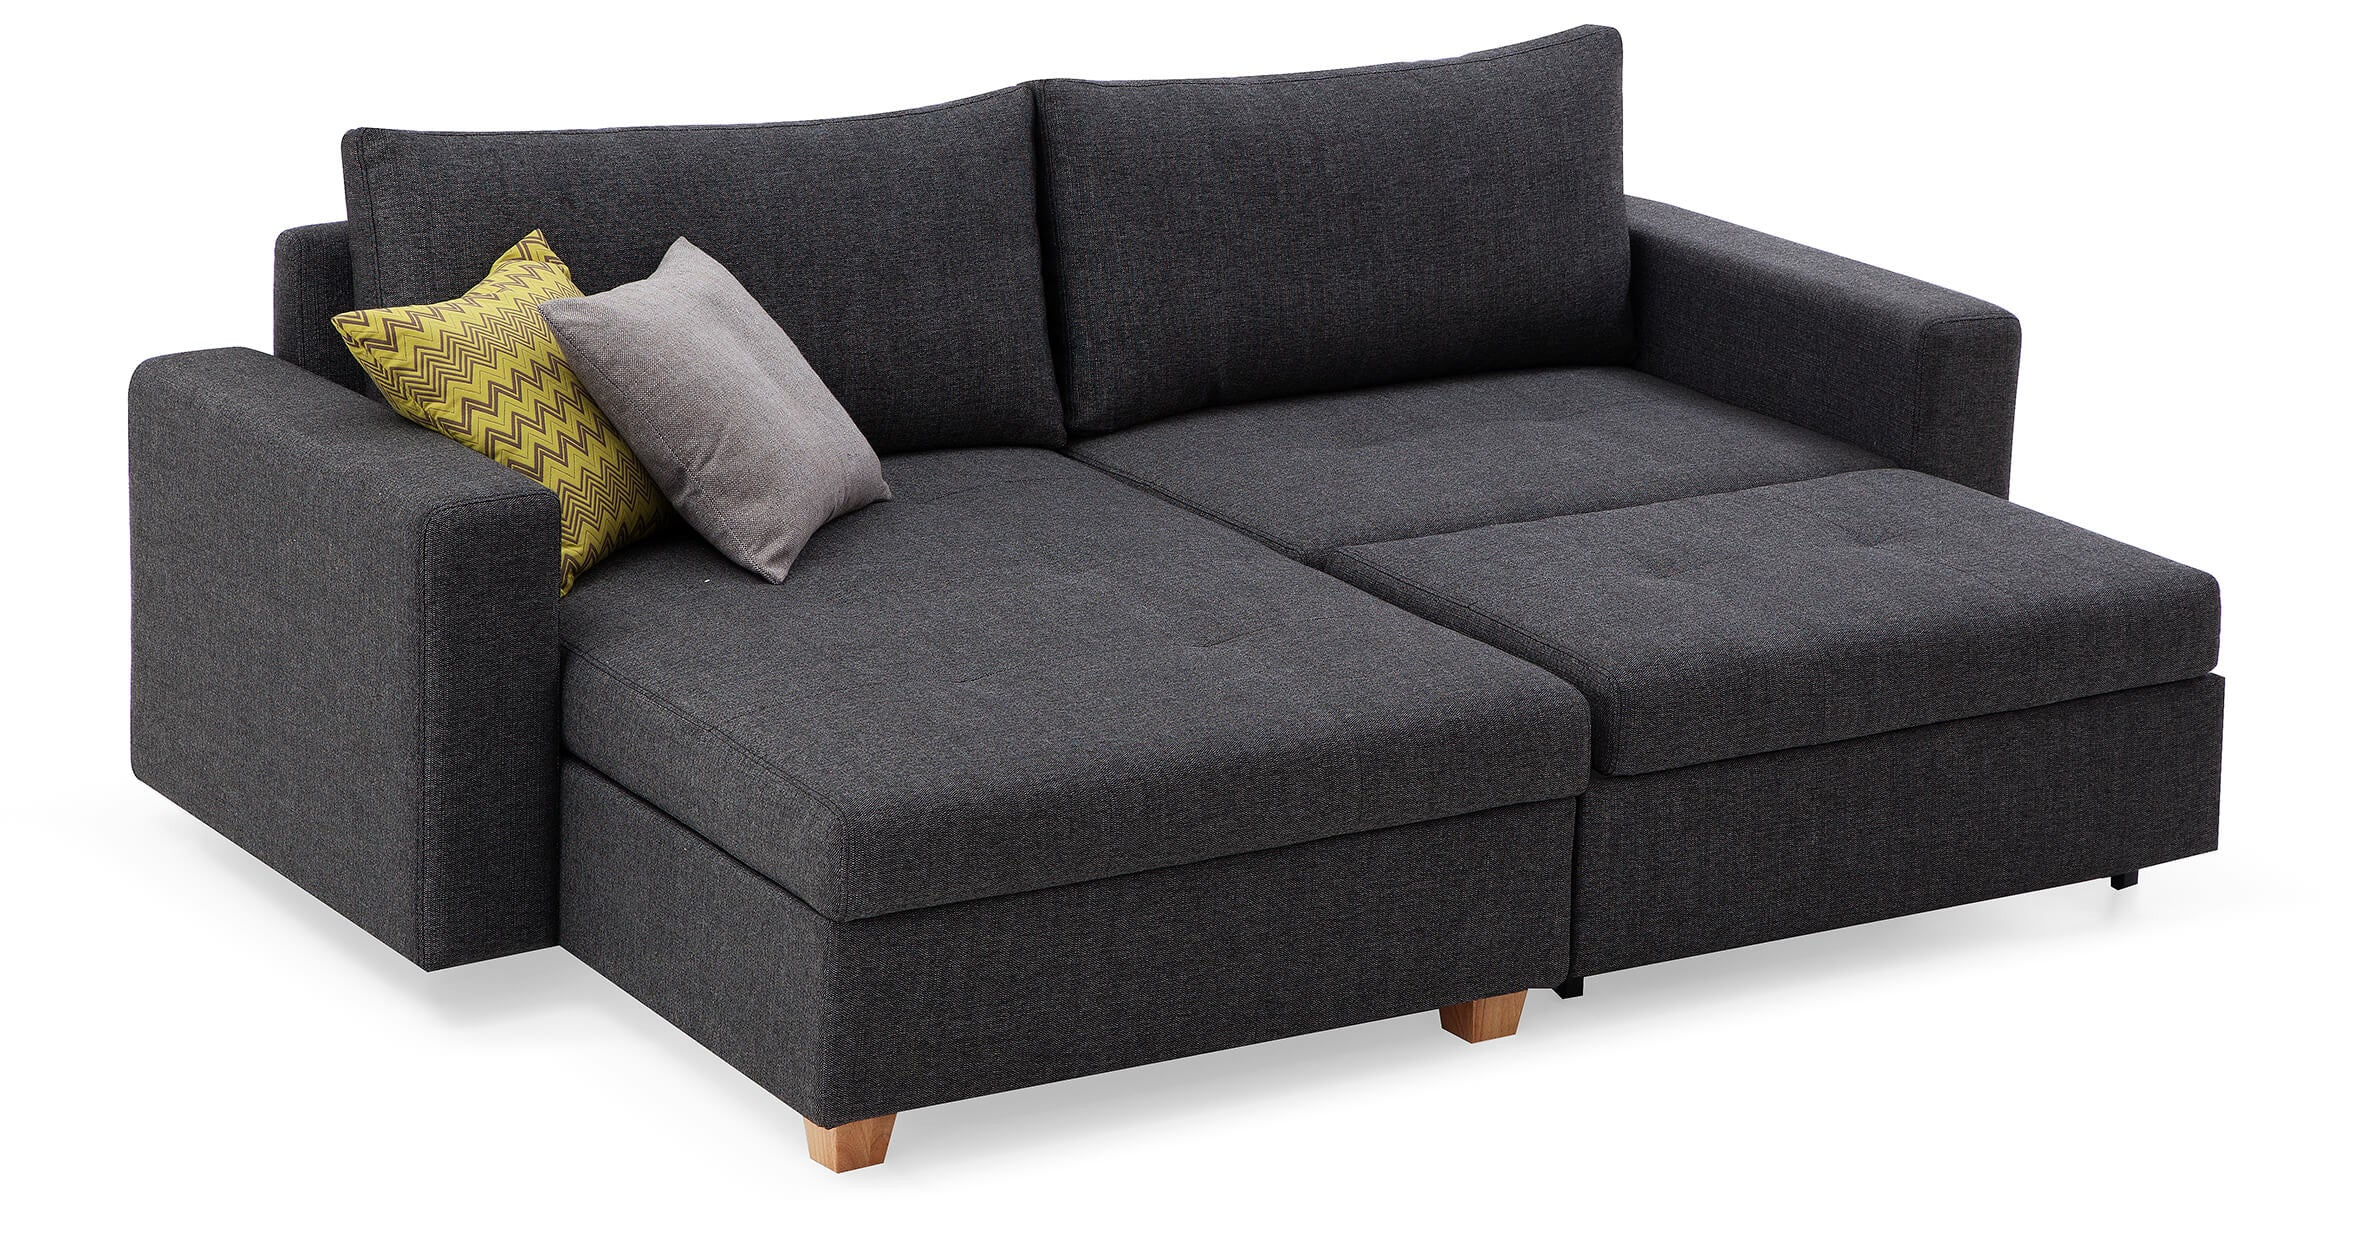 Take a Look at These Beautiful L Shaped Sofa Bed Pics - Home ...